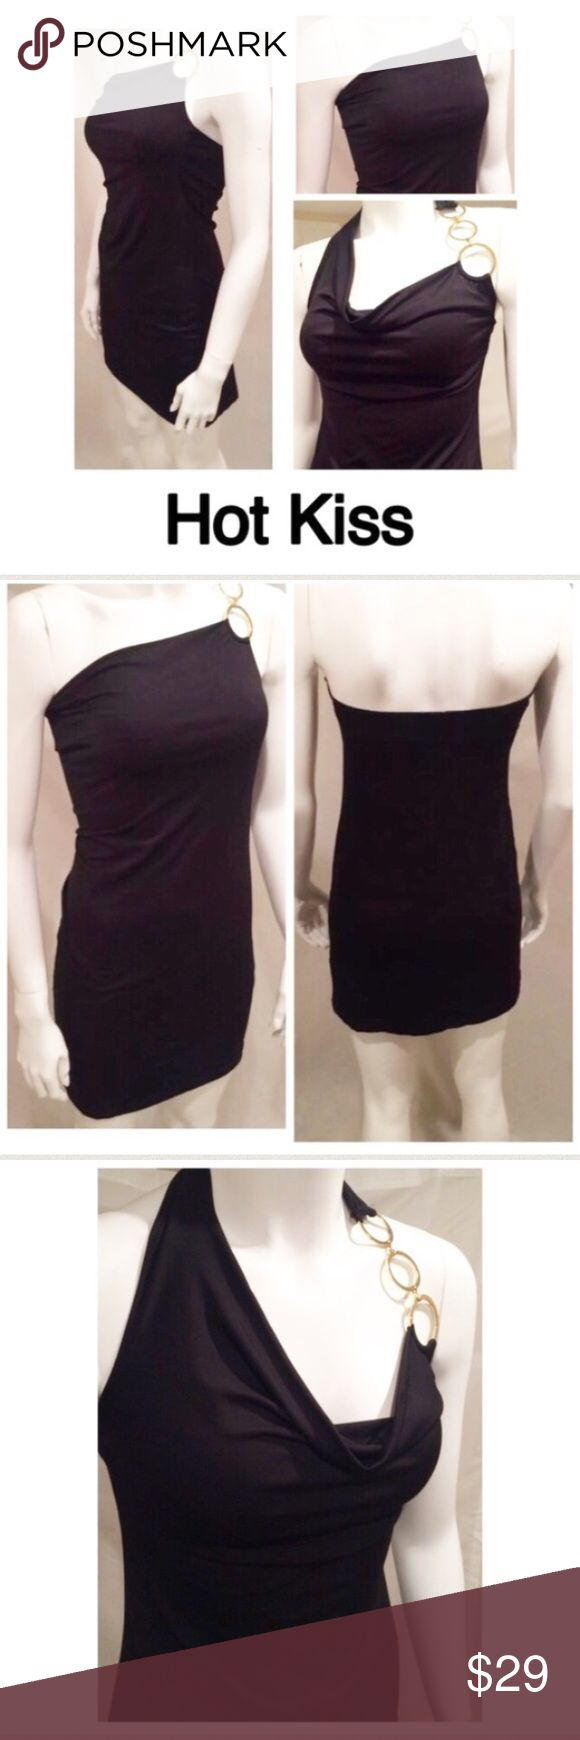 Hot Kiss Halter Sexy Little Black Dress Small Hot Kiss Halter Sexy Little Black Dress Gold Hardware Small Juniors  Every girl needs a sexy little black dress!   92% Polyester / 8% Spandex   No stains or holes 🛍For the best deal, I offer a bundle discount! Please check out my closet for other fabulous items!🛍 Hot Kiss Dresses One Shoulder